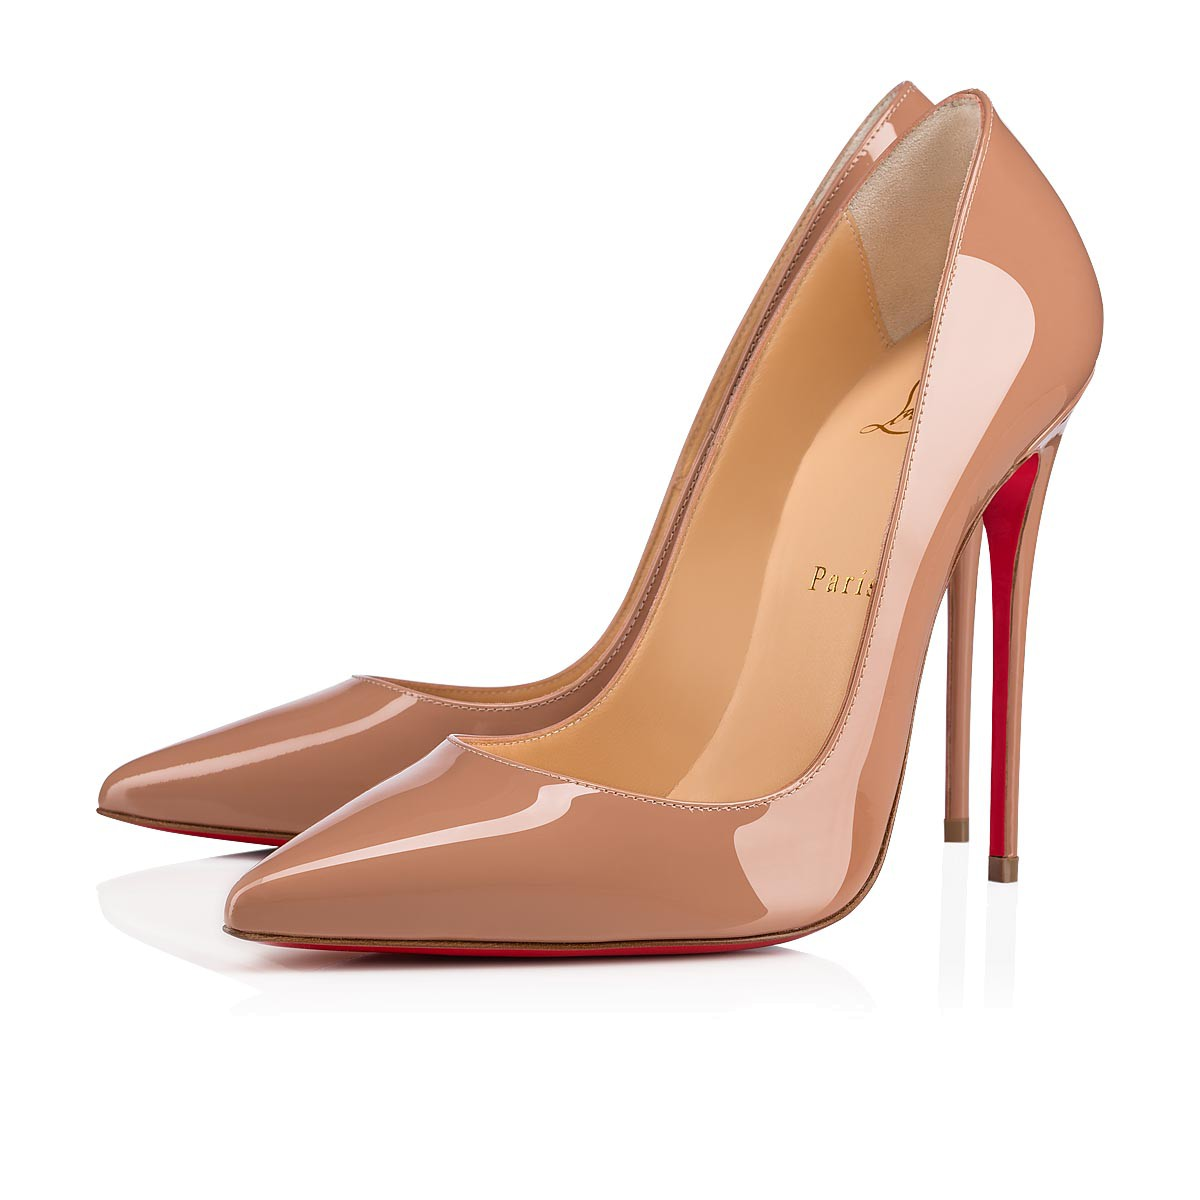 1794733e5808 So Kate 120 Nude Patent Leather - Women Shoes - Christian Louboutin